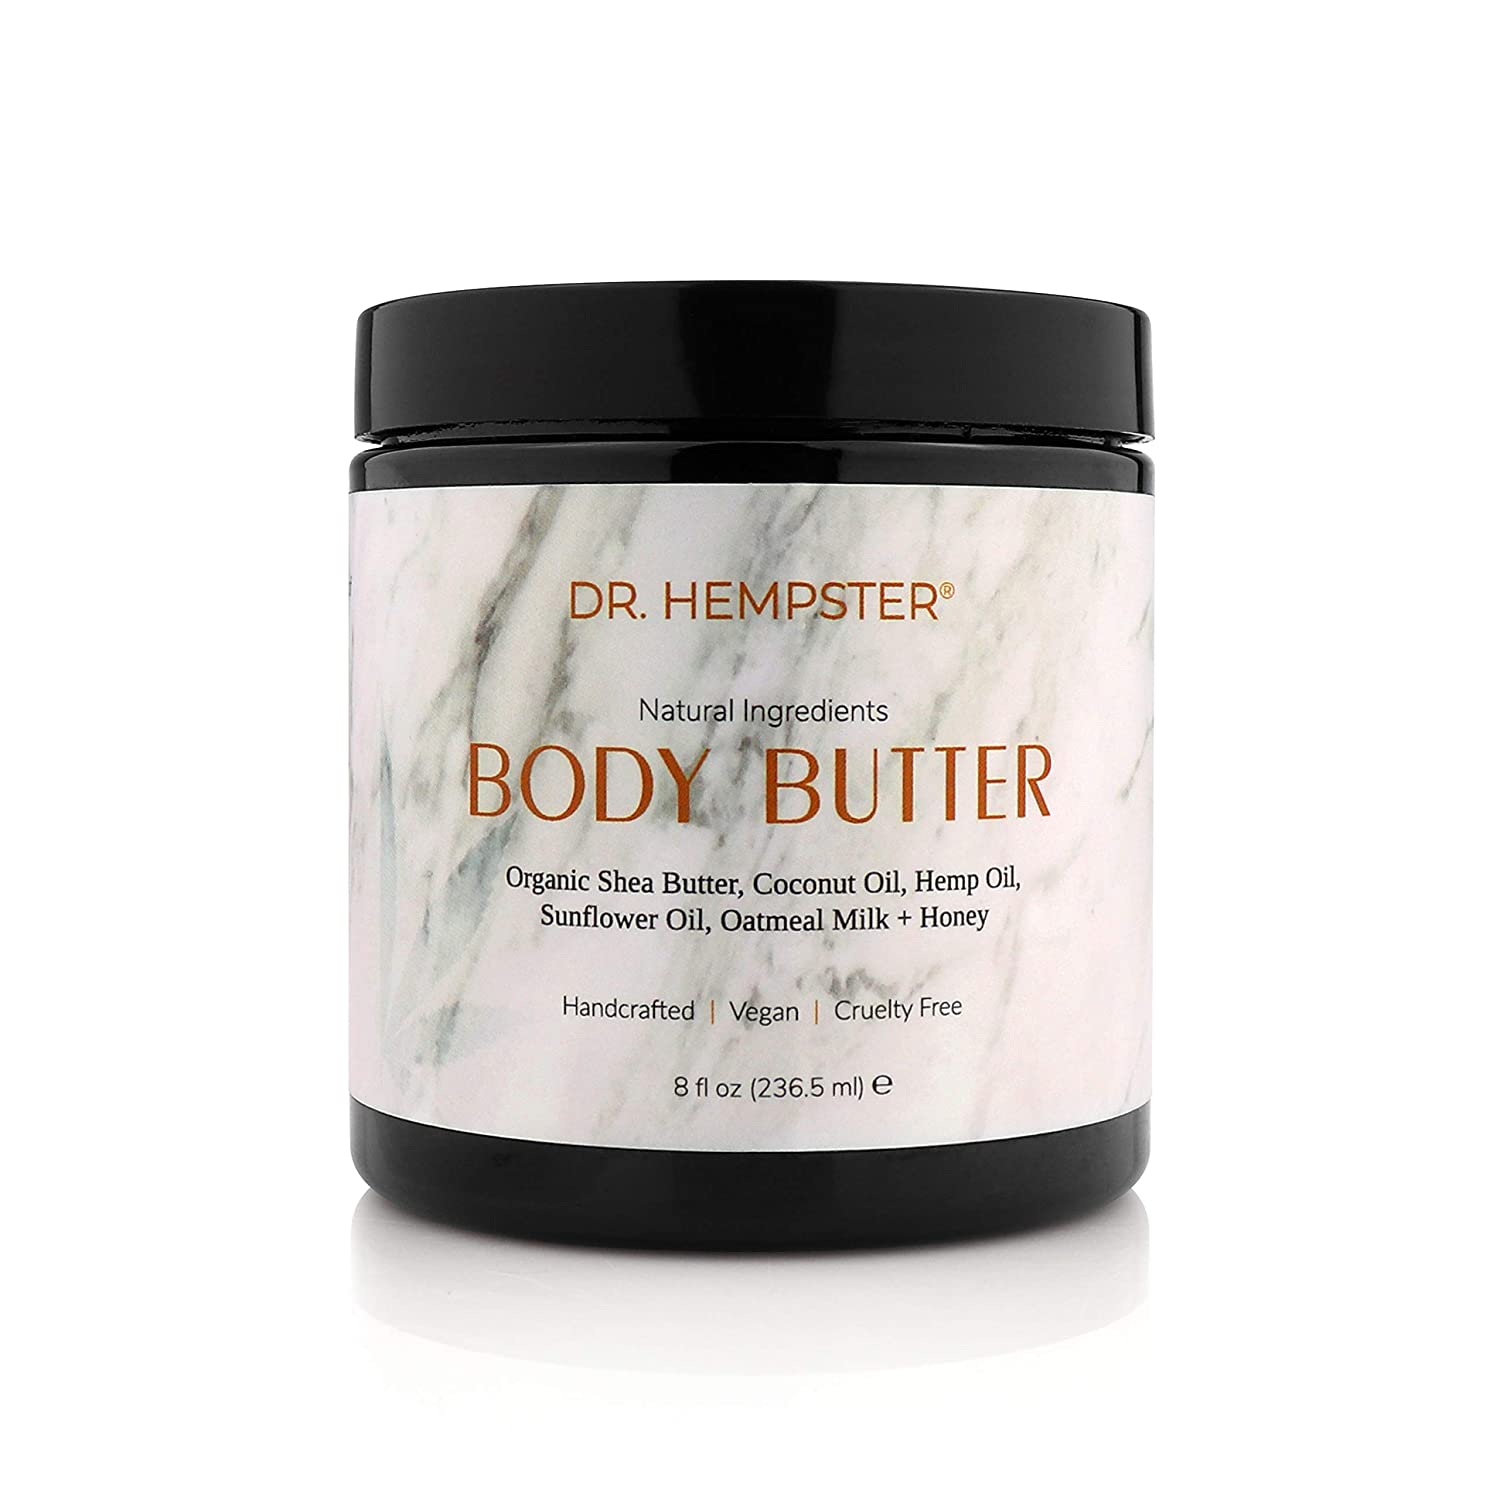 Shea Body Butter with Hemp Oil - Natural Moisturizing Body Lotion for Dry Skin, Eczema with Organic Shea Butter, Coconut Oil, Oatmeal Milk, Sunflower Oil, Honey - Handcrafted, Vegan